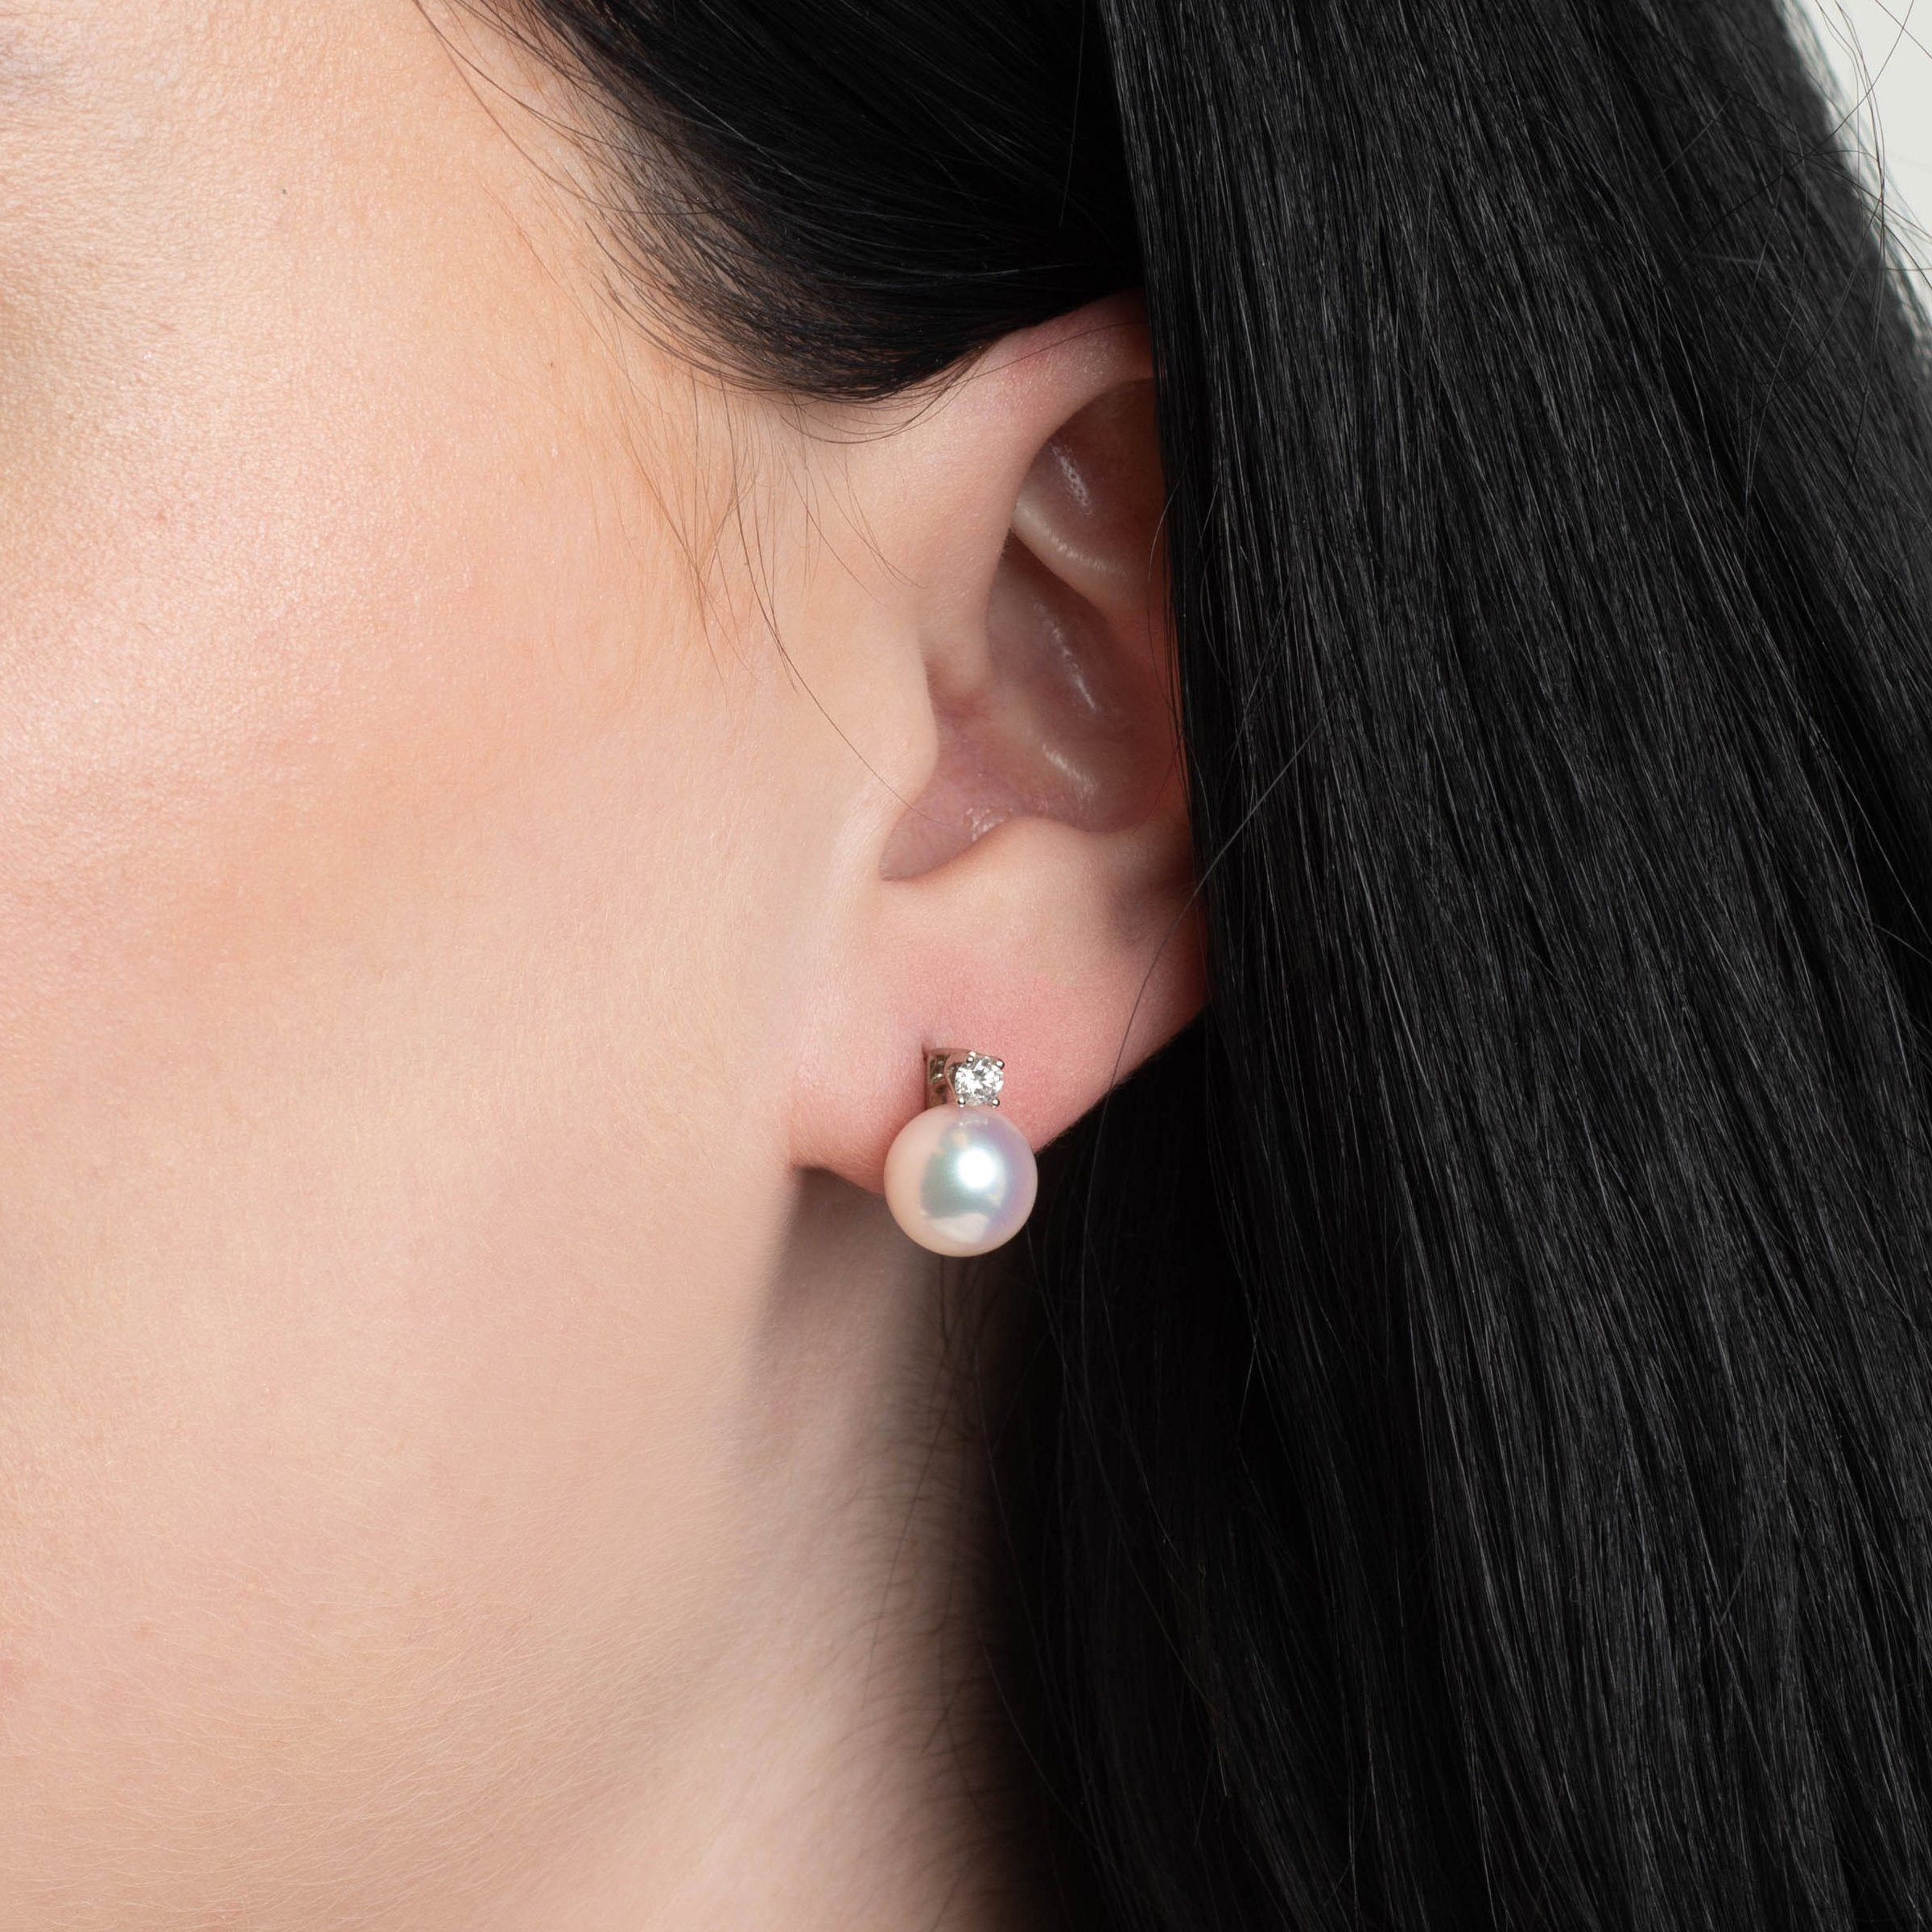 Starlight Collection 9.0-9.5 mm White Hanadama Pearl and Diamond Stud Earrings